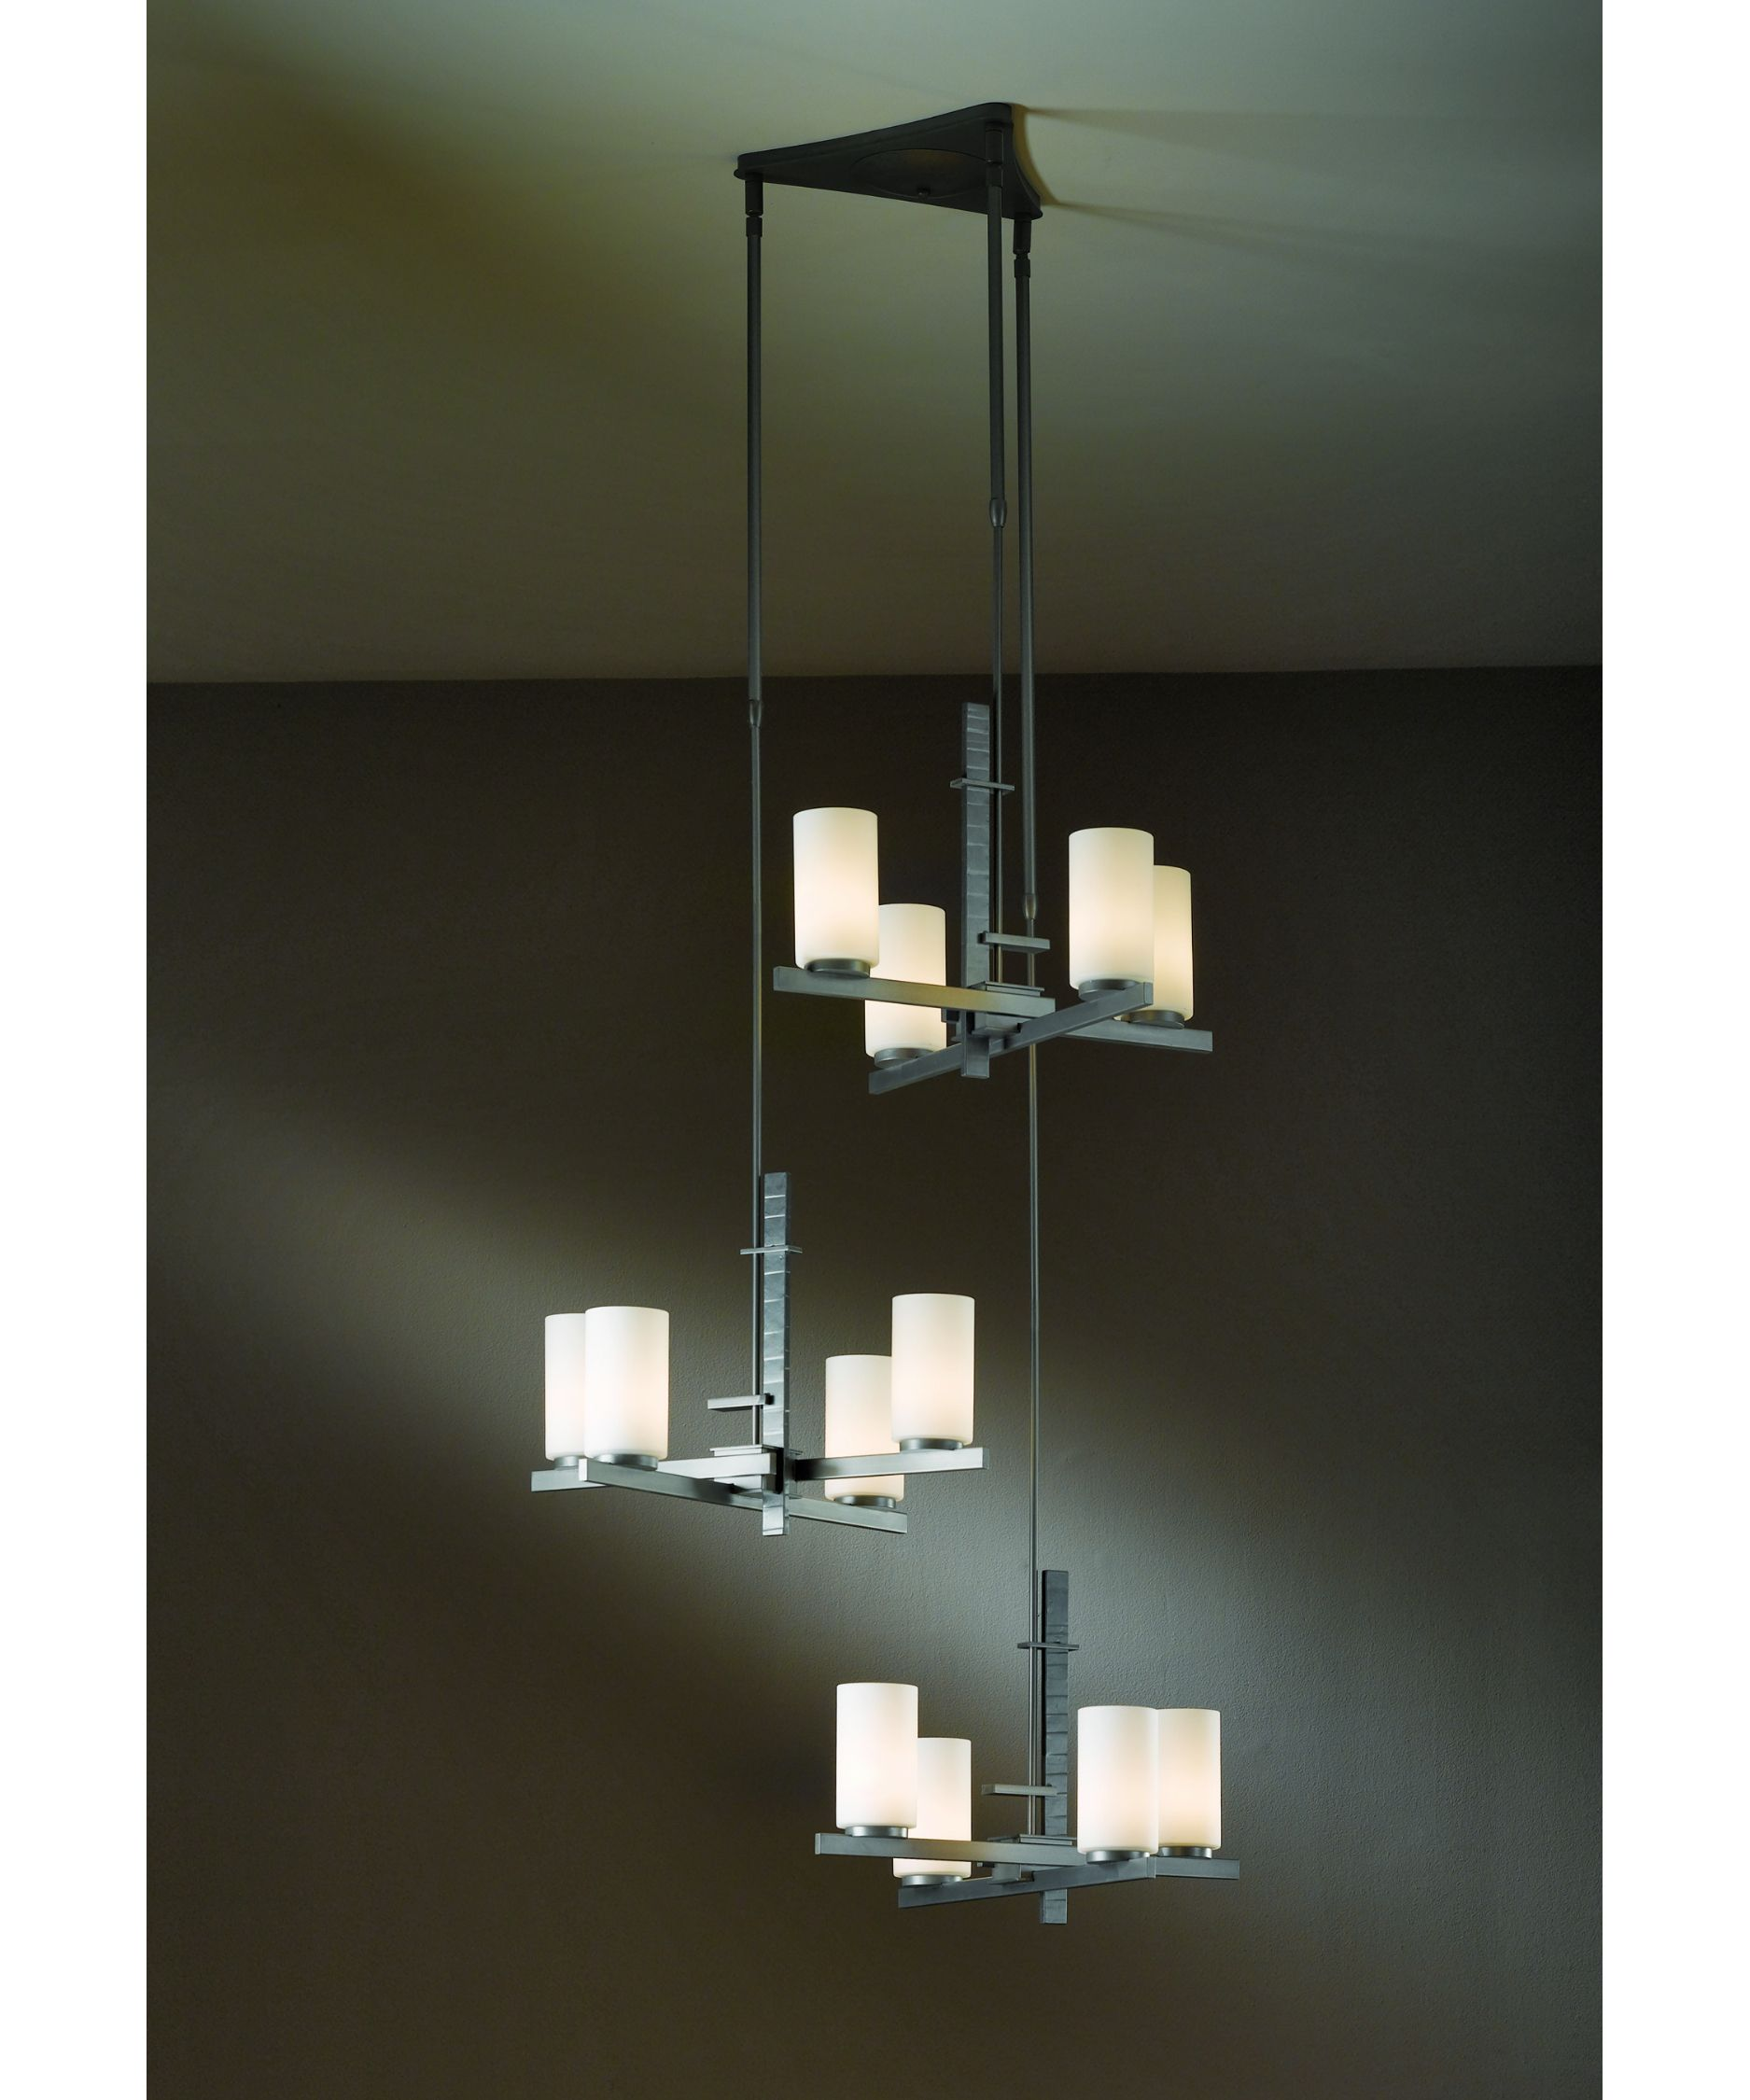 Ondrian Chandelier By Hubbardton Forge Lighting The Image To Learn More